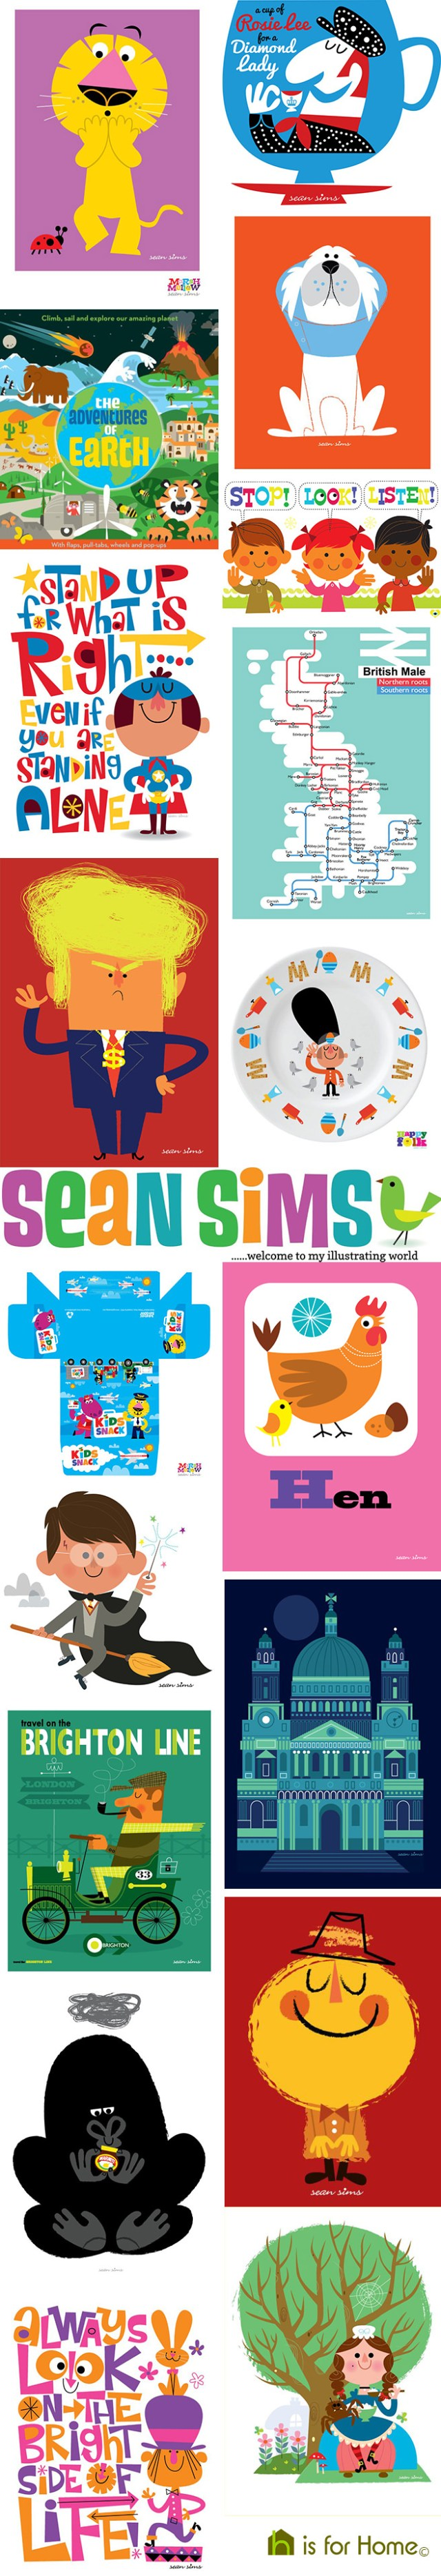 Mosaic of Sean Sims designs | H is for Home